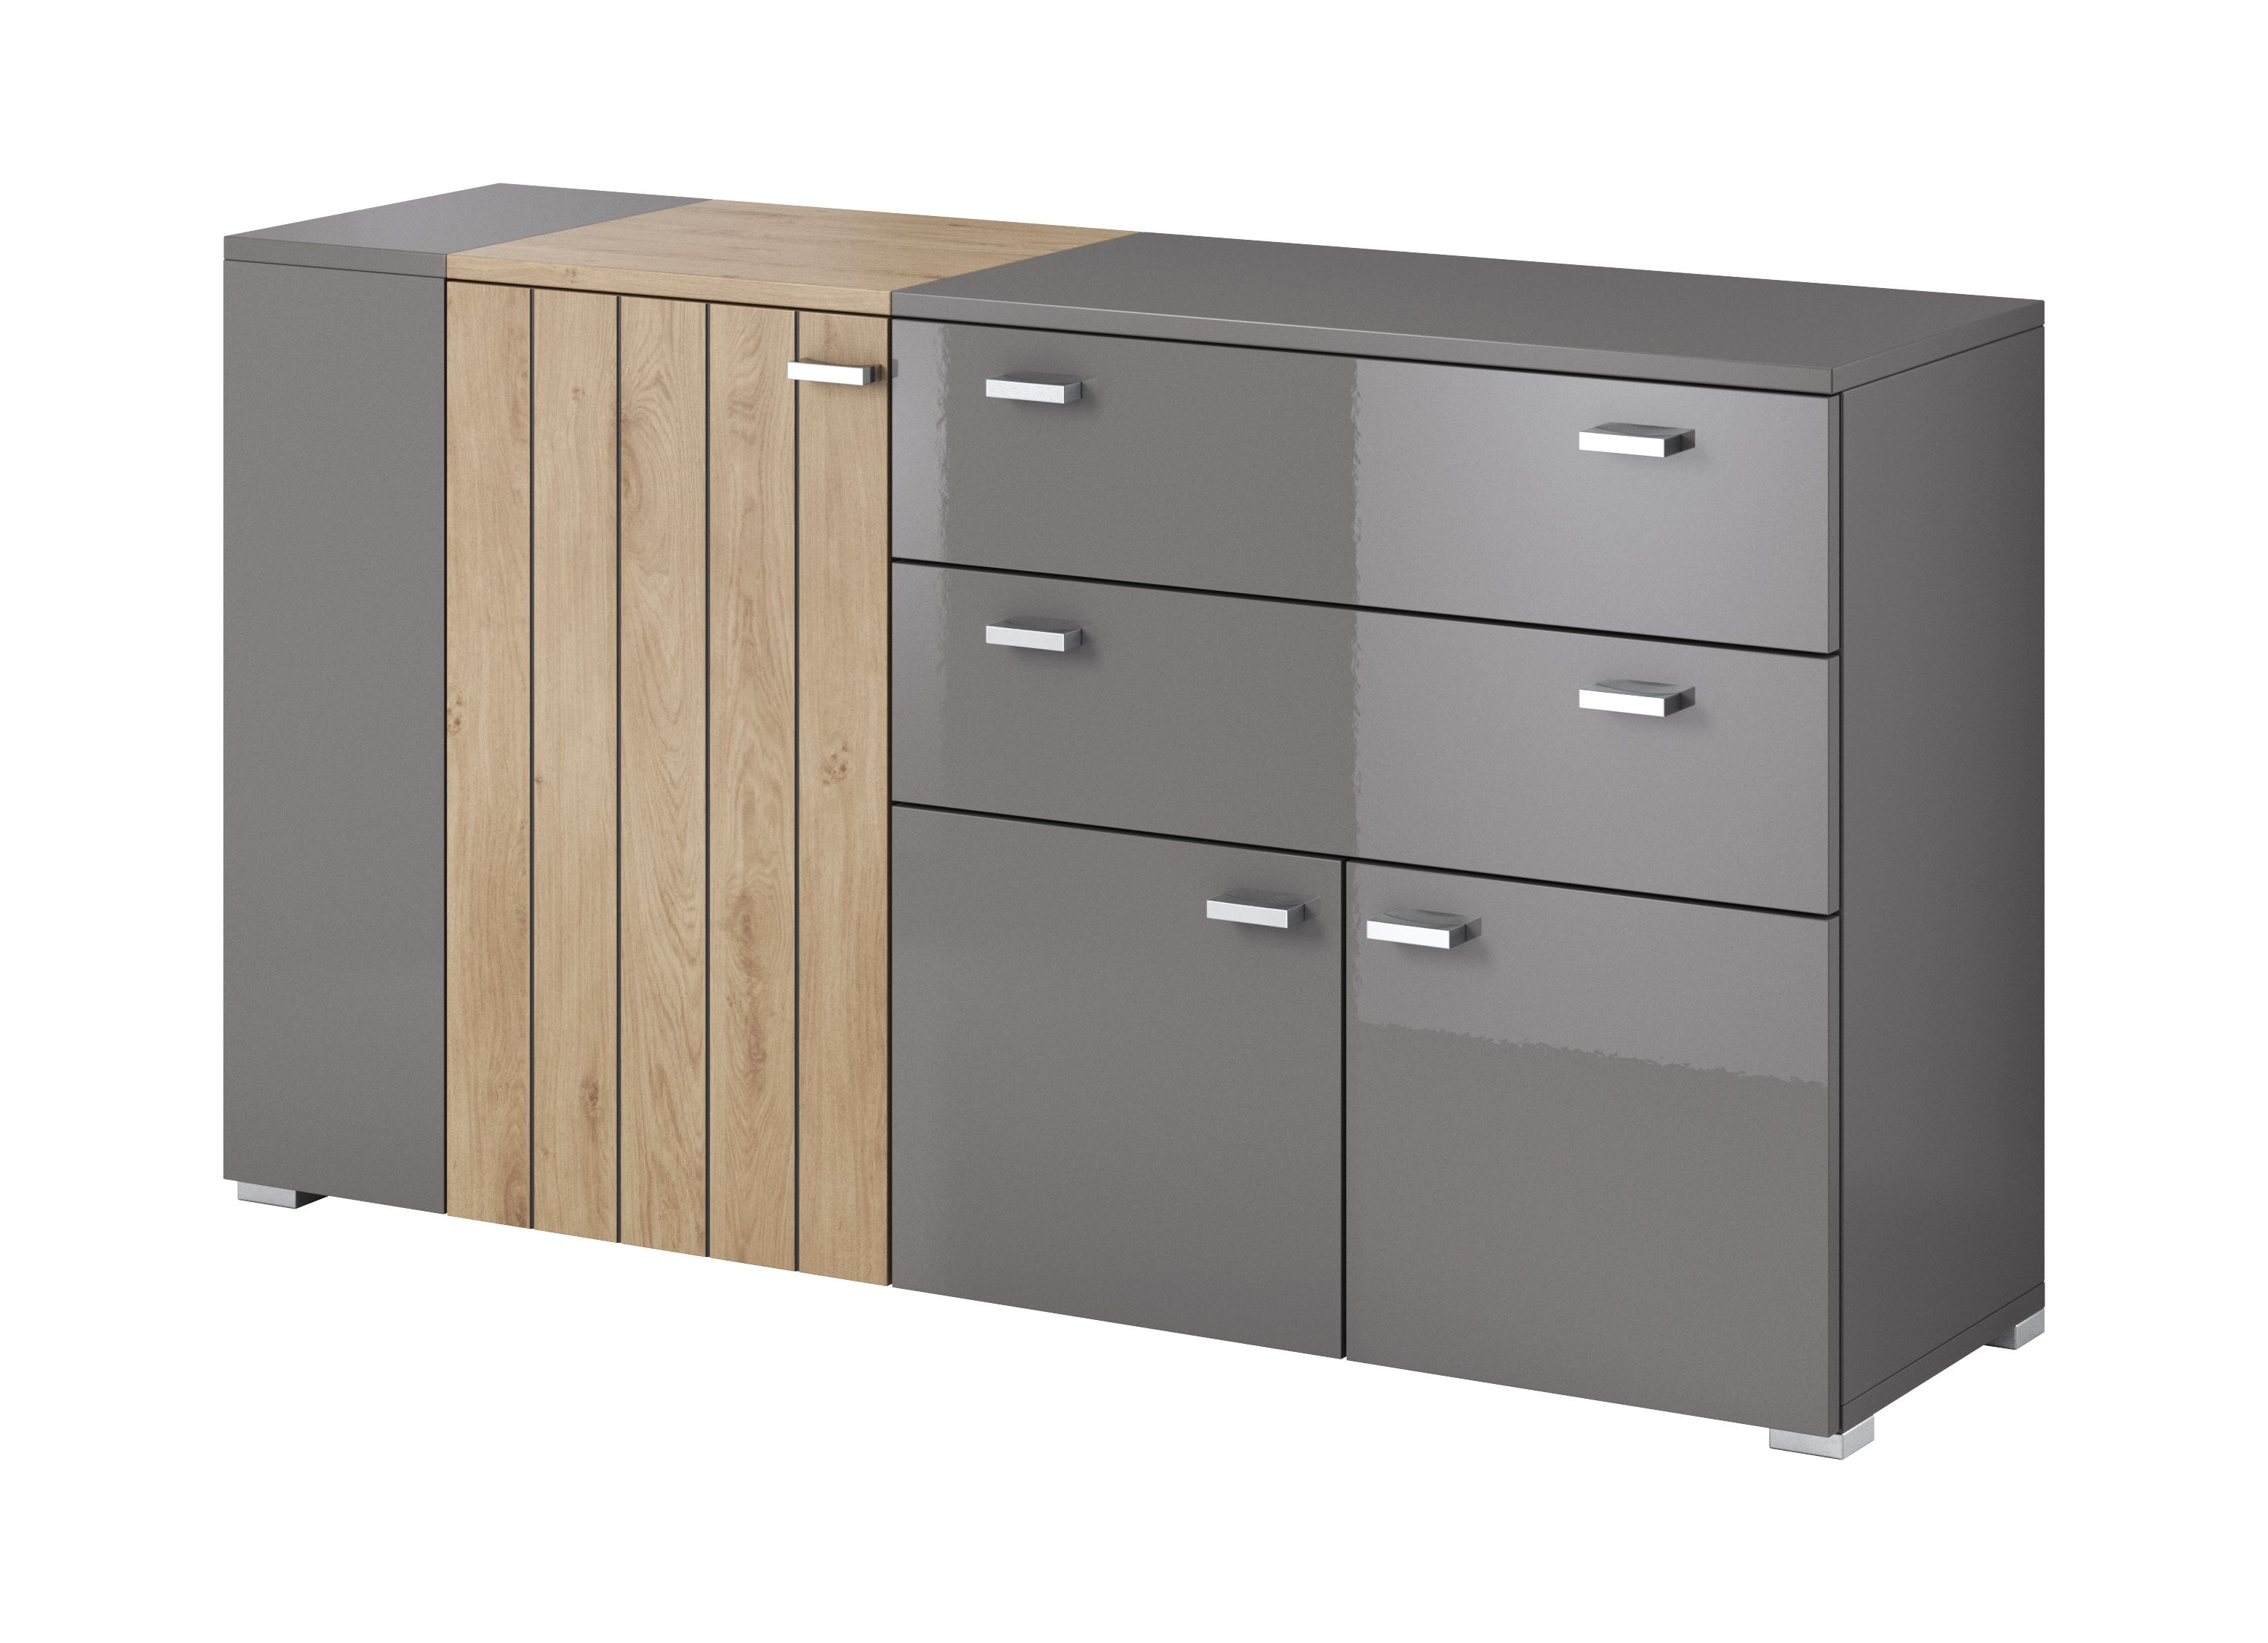 Drawer Units Stylish Drawer Units Modern Chest Of Drawers Chest Of Drawers Dressers For Sale Be Chest Of Drawers Drawer Storage Unit Drawers For Sale